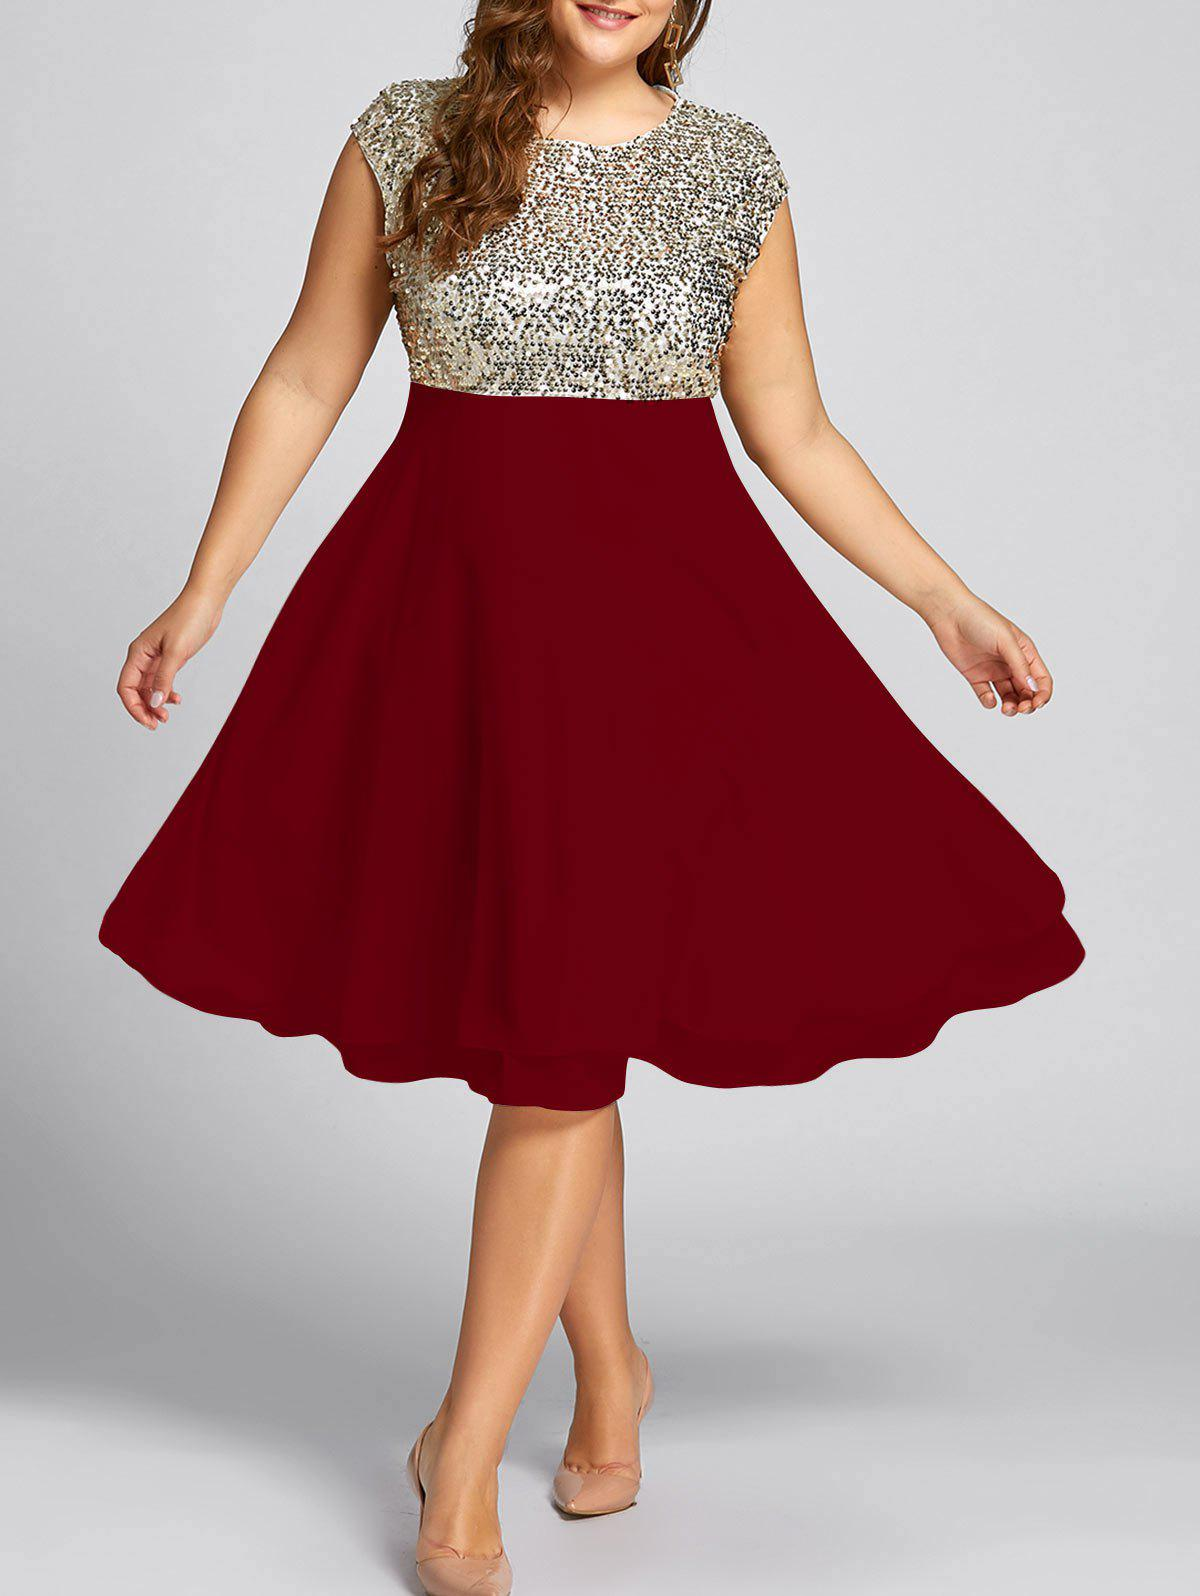 Wine Red 2xl Flounce Plus Size Sparkly Sequin Cocktail Dress ...